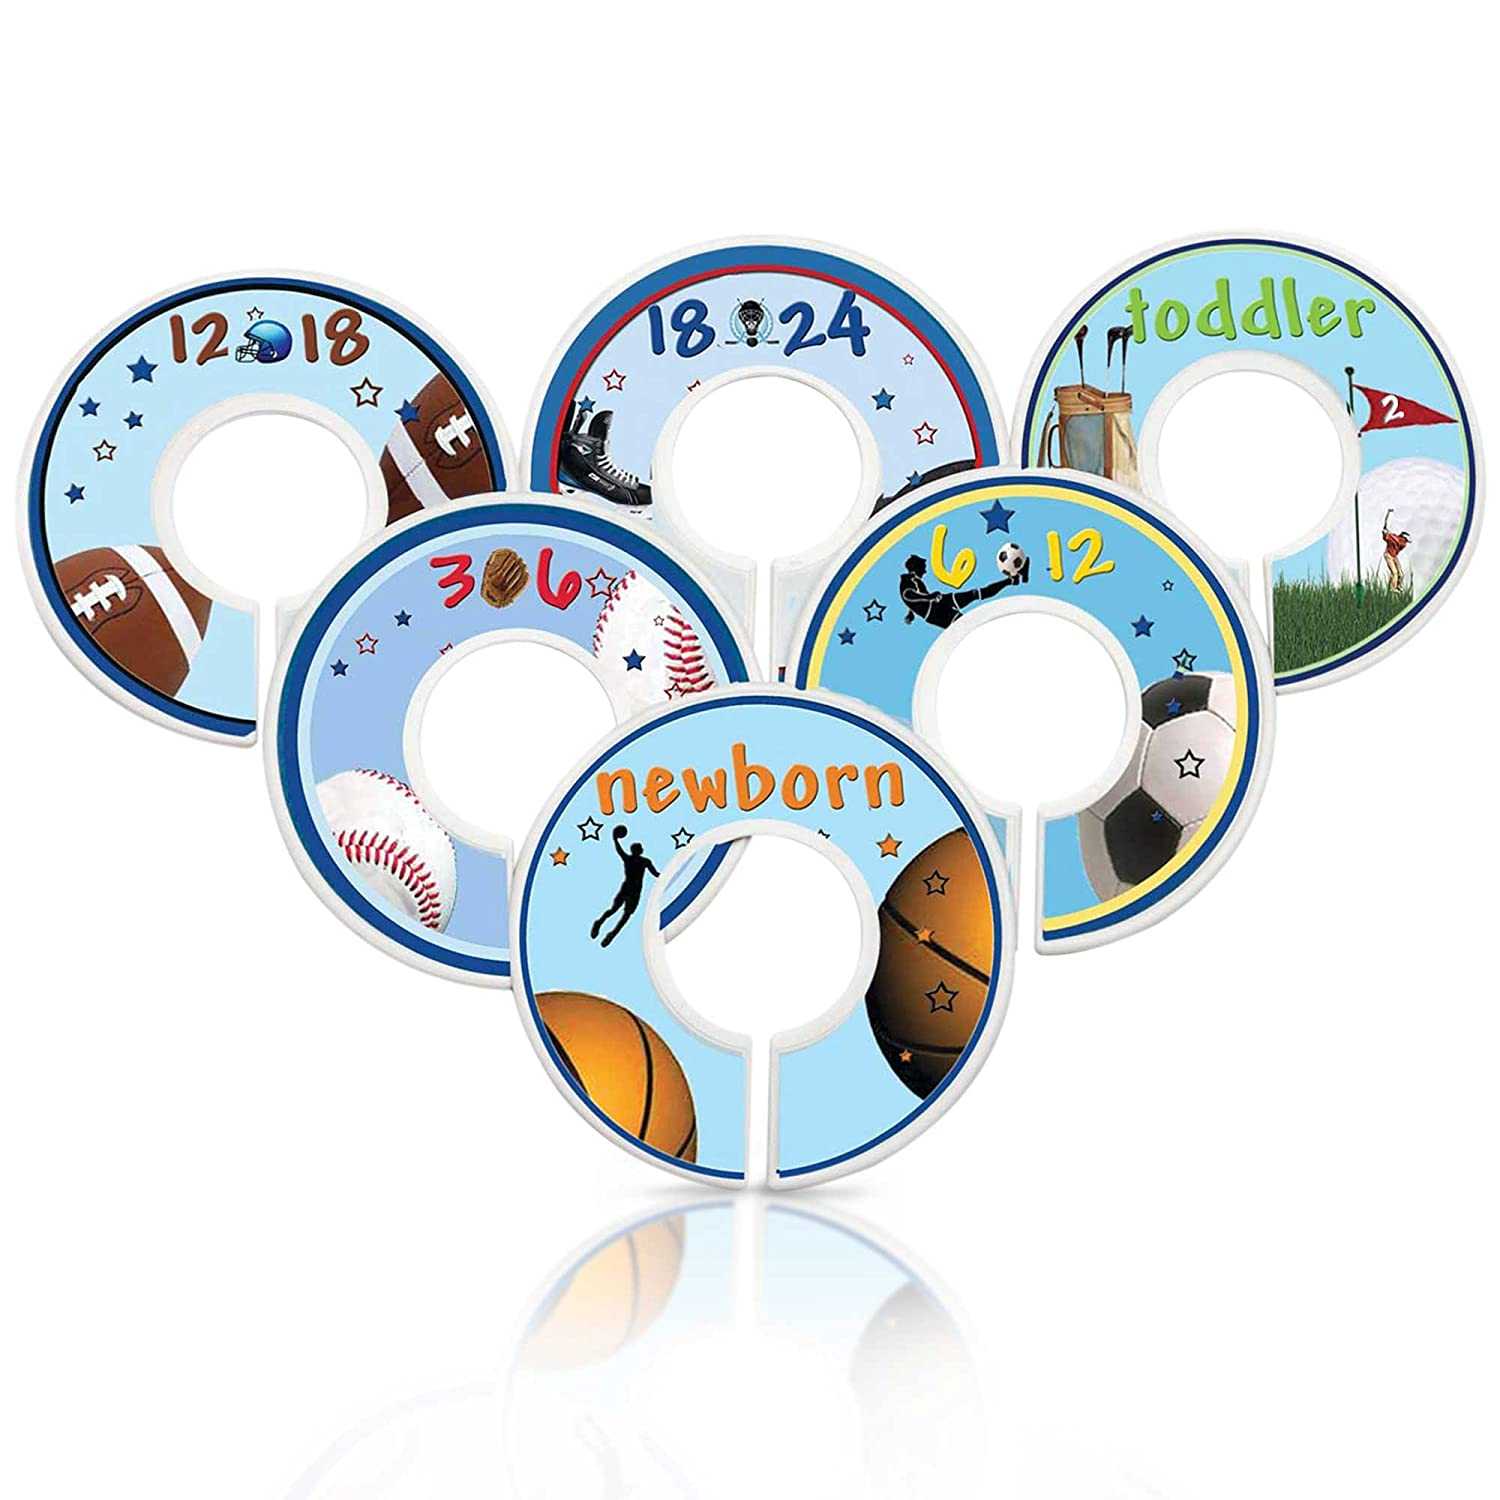 Mumsy Goose Nursery Safety and trust Closet Dividers Sports Baby C Large-scale sale Theme Boy